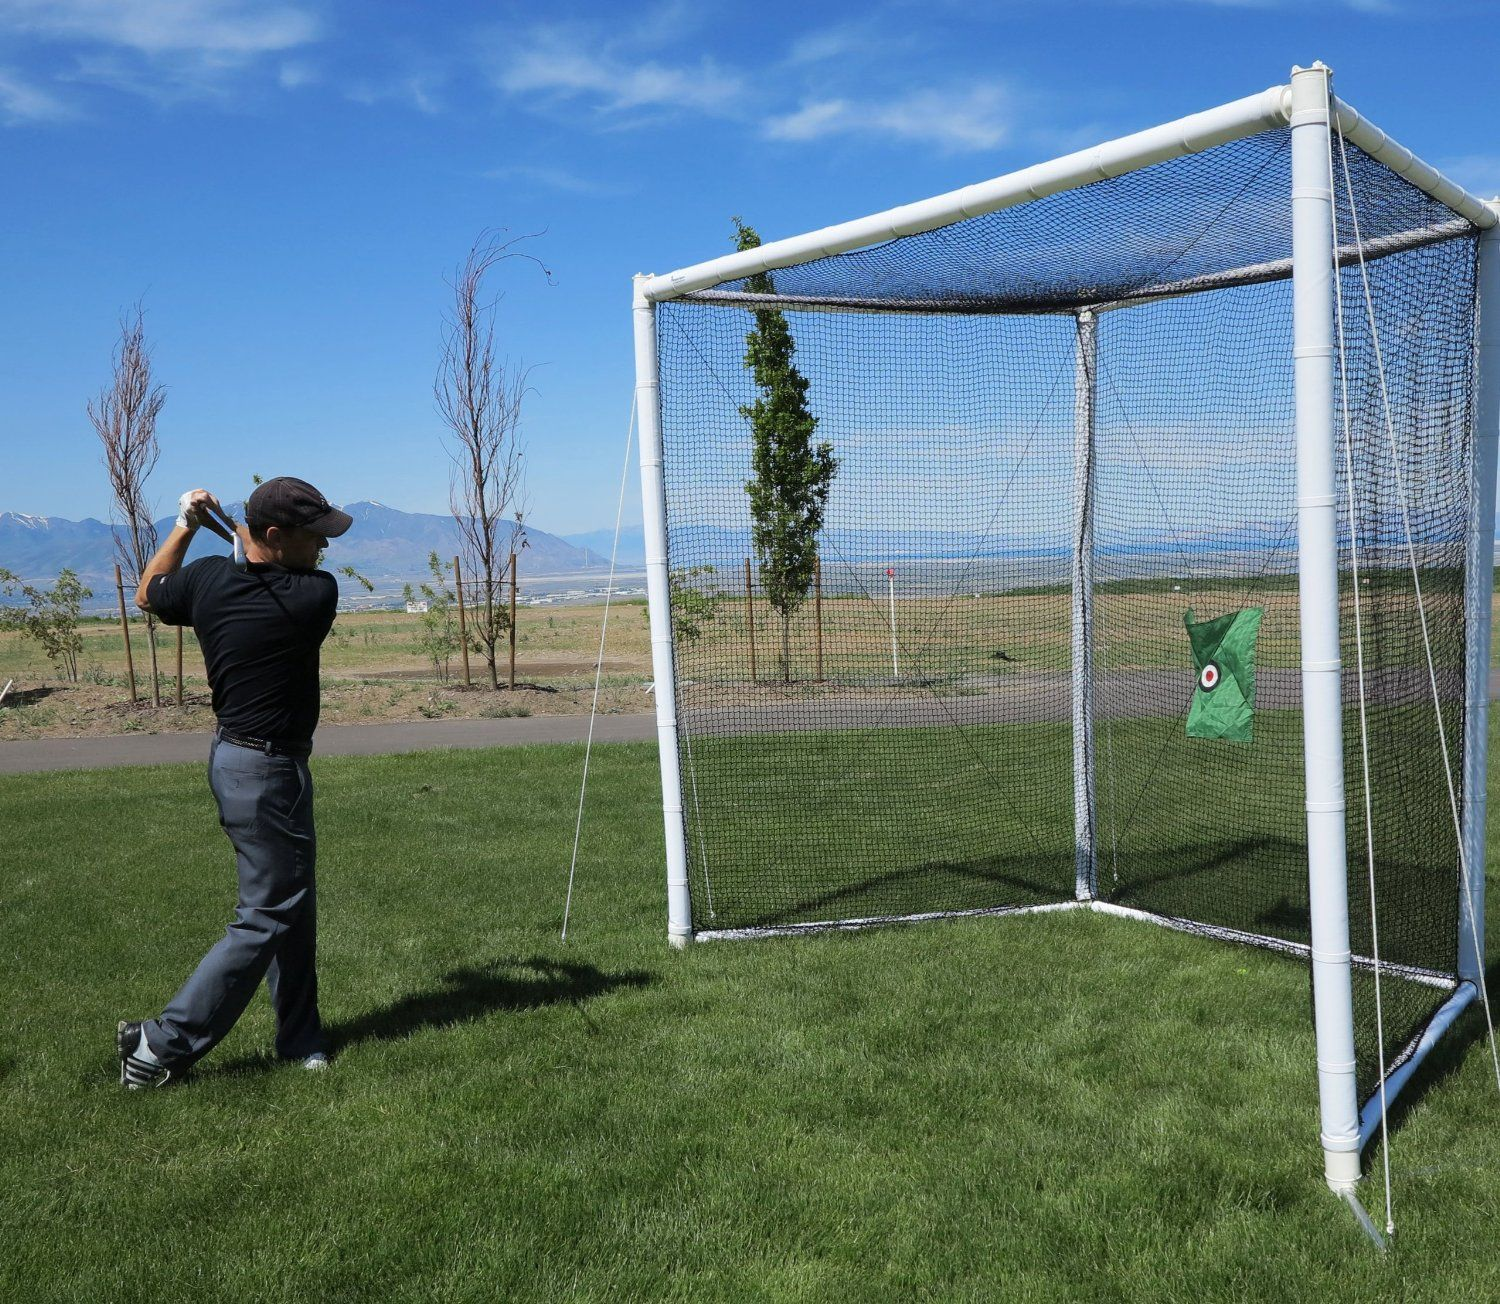 turn your backyard into a driving range with this full size